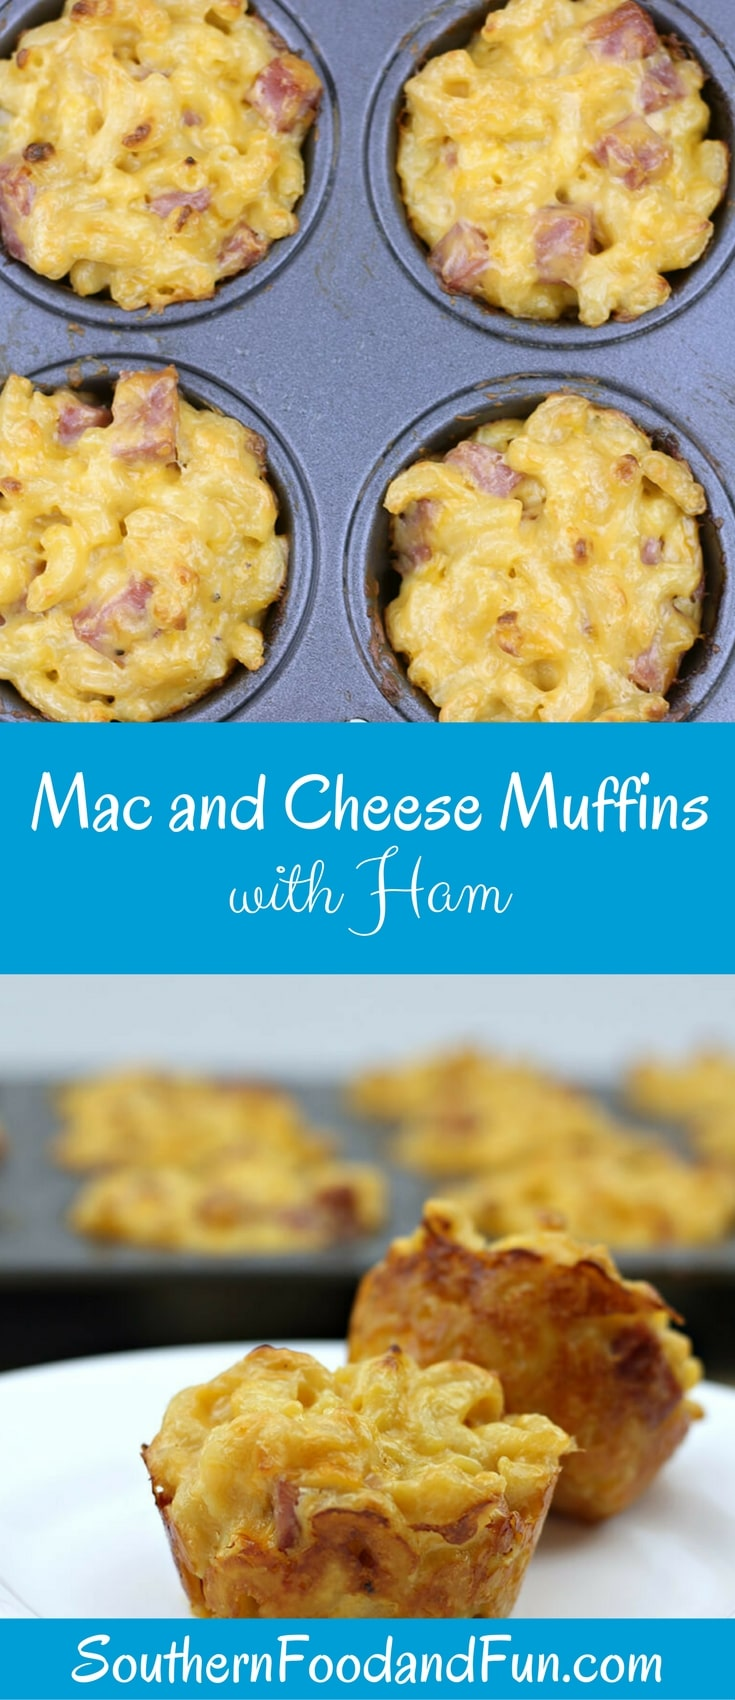 Mac and cheese muffins are super easy to make with leftover macaroni and cheese. Add some diced ham and you'll have a great snack!